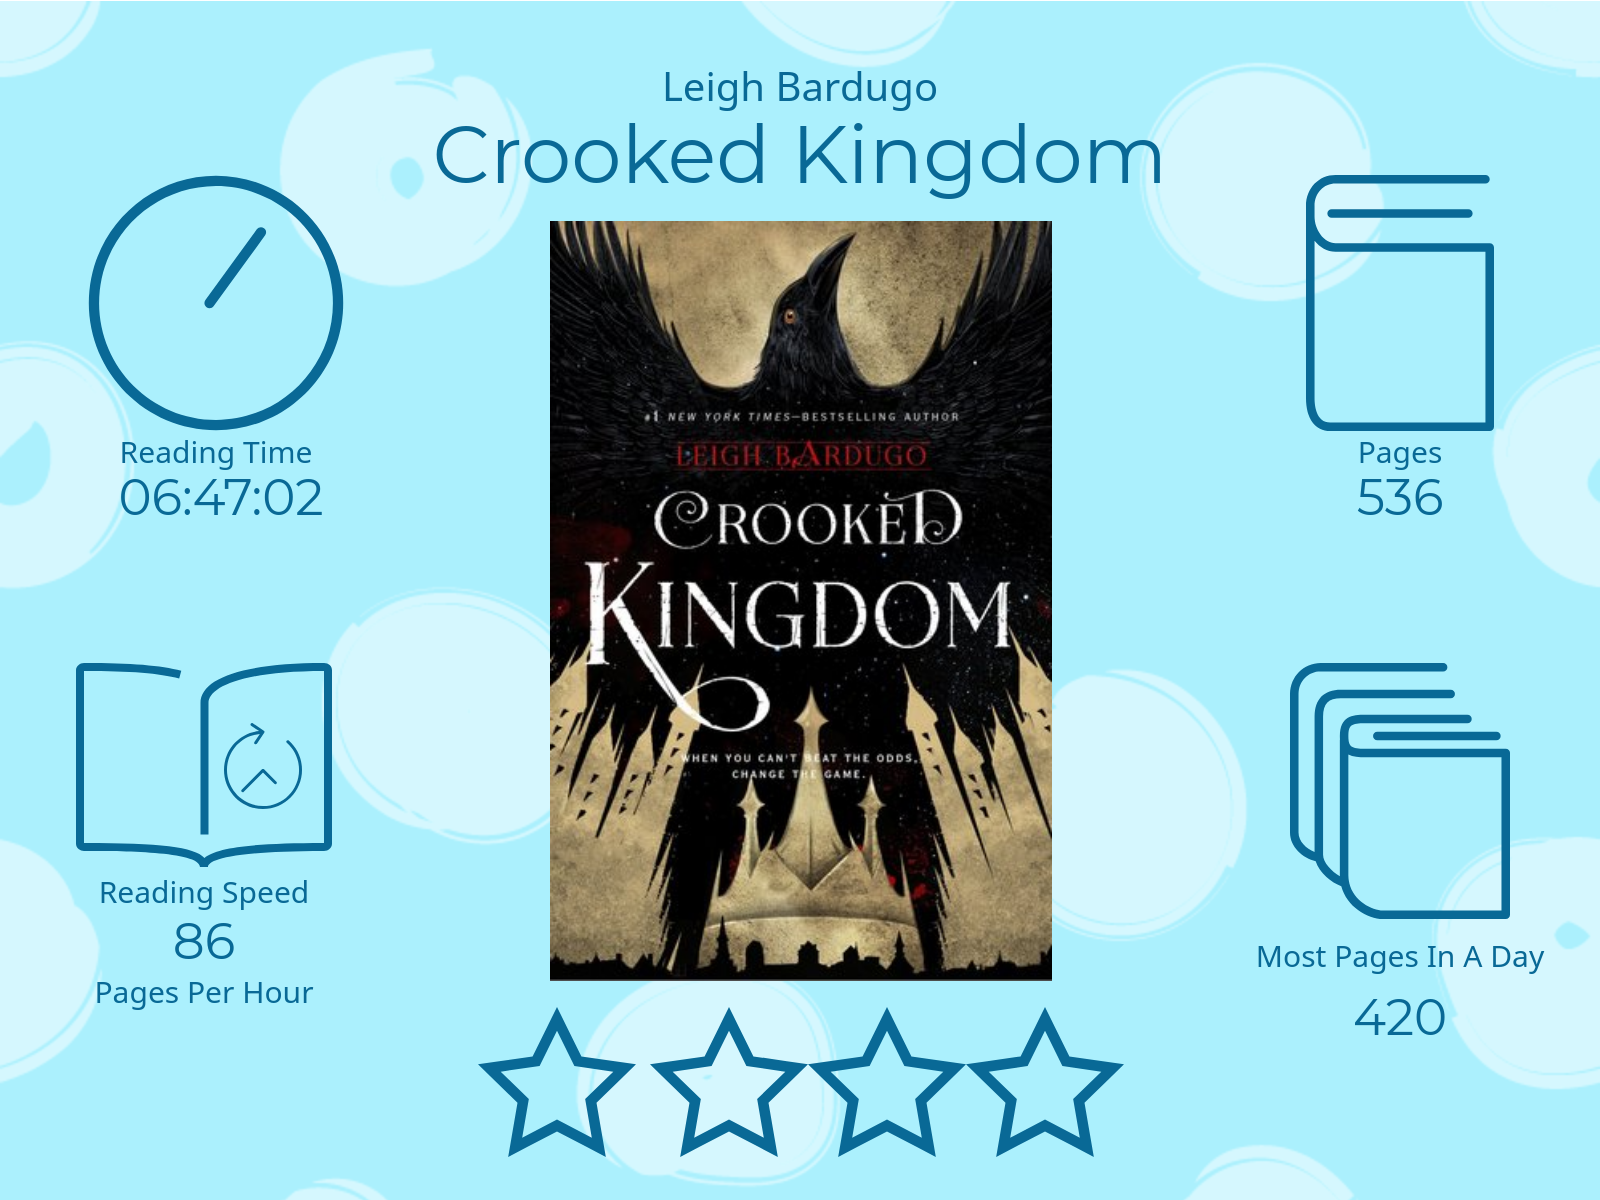 Crooked Kingdom by Leigh Bardugo 4 stars Read Time 6 hours 47 Minutes and 02 seconds 536 Pages 86 pages per hour Most pages read in a day: 420